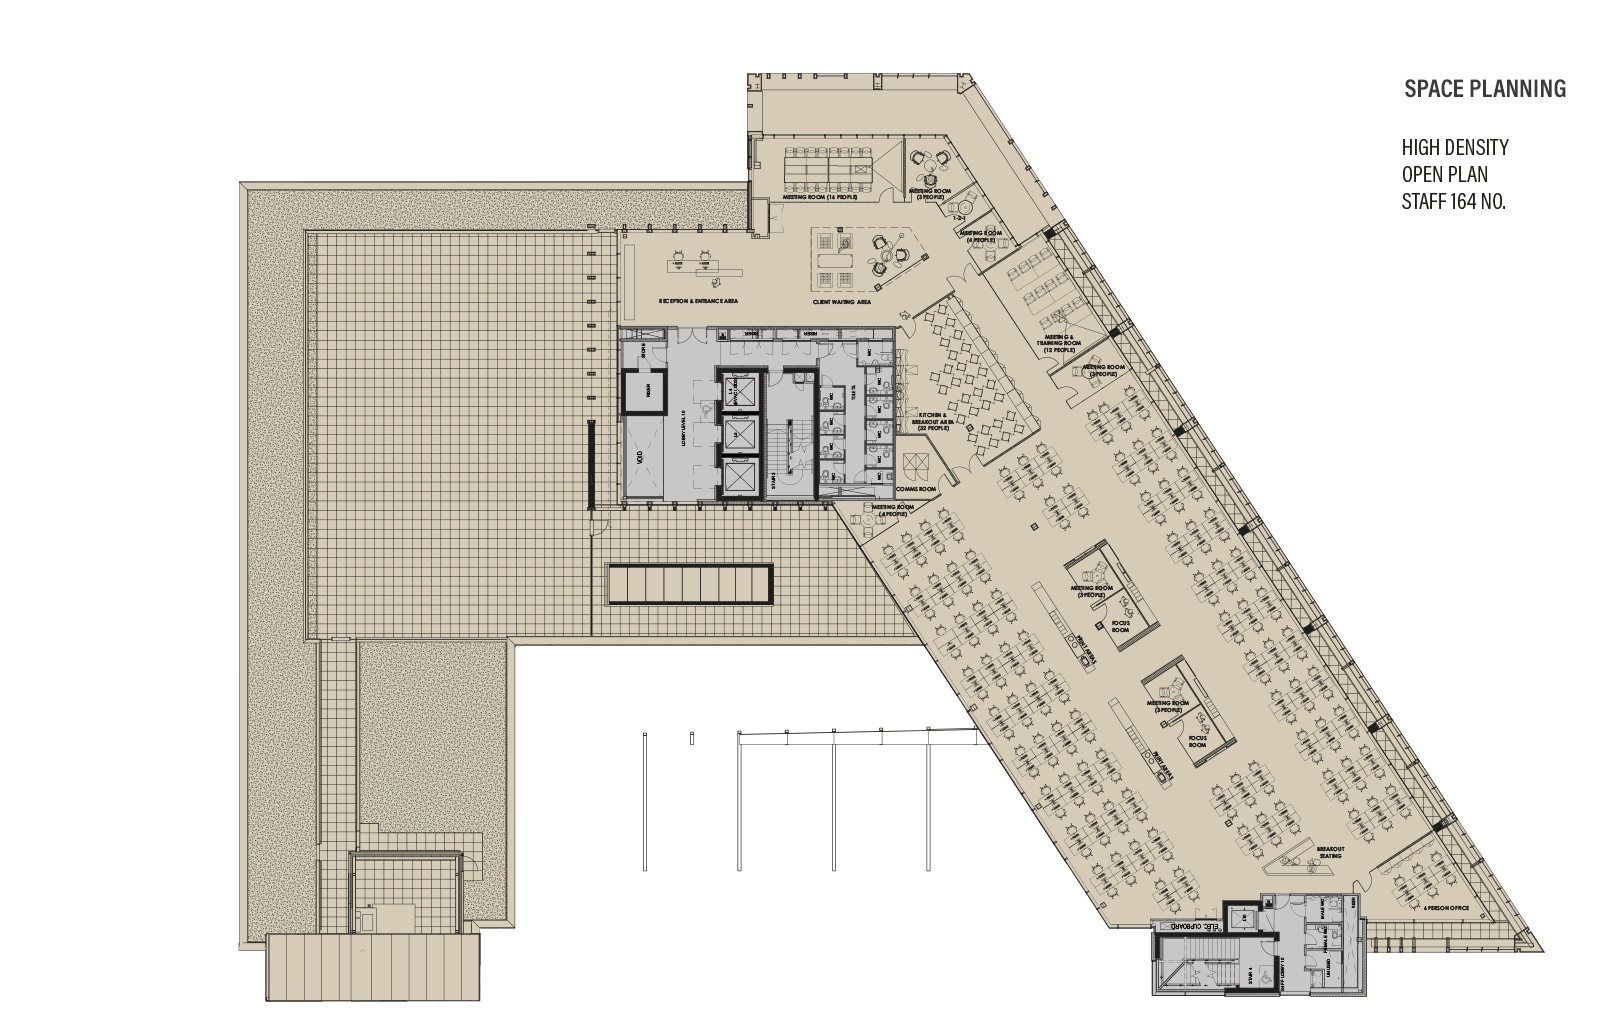 Ninth Floor Plan - Space Planning - High